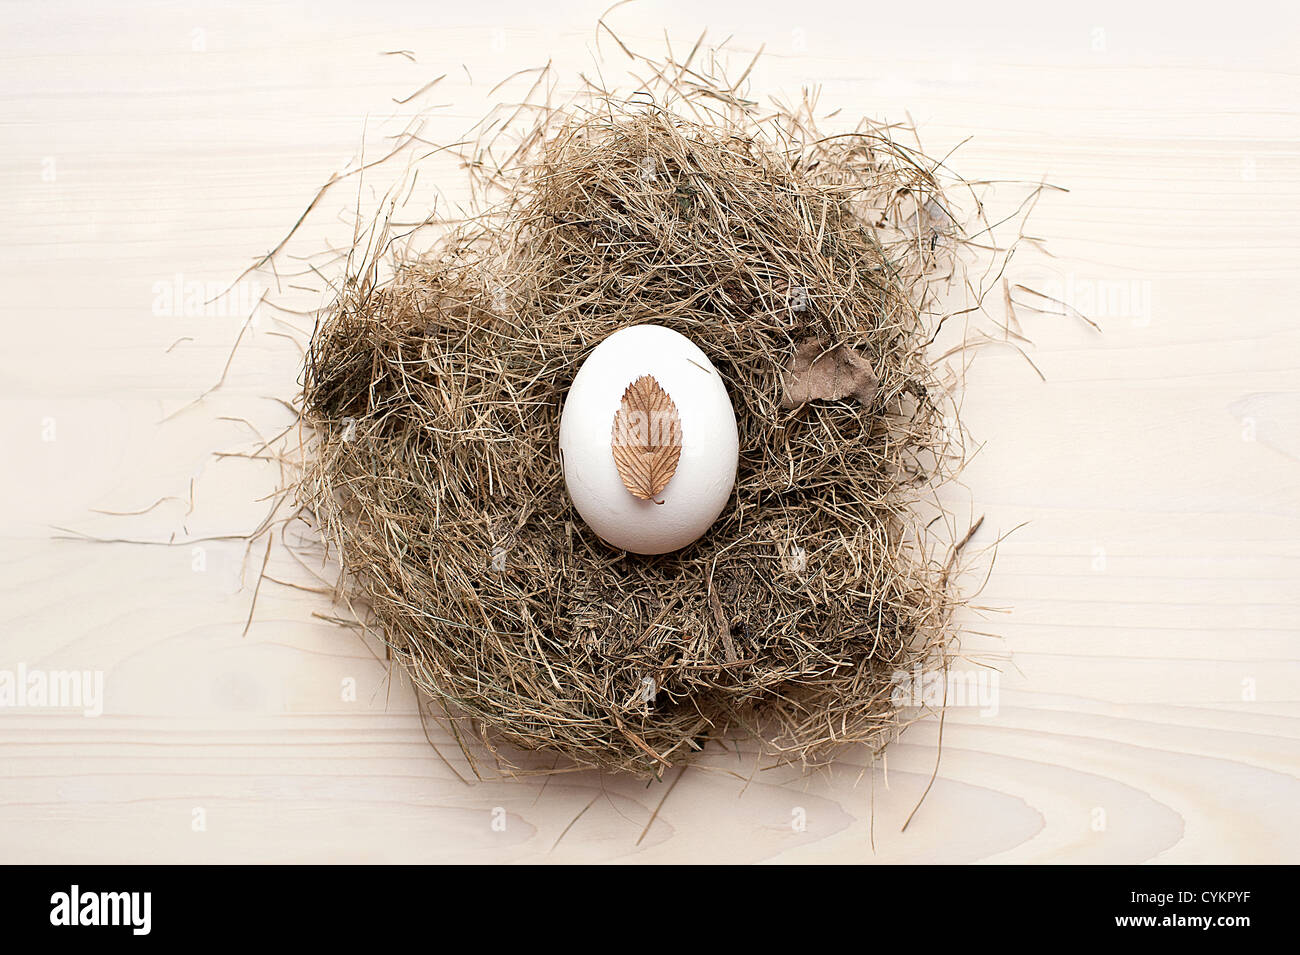 Close up of egg in birds nest - Stock Image